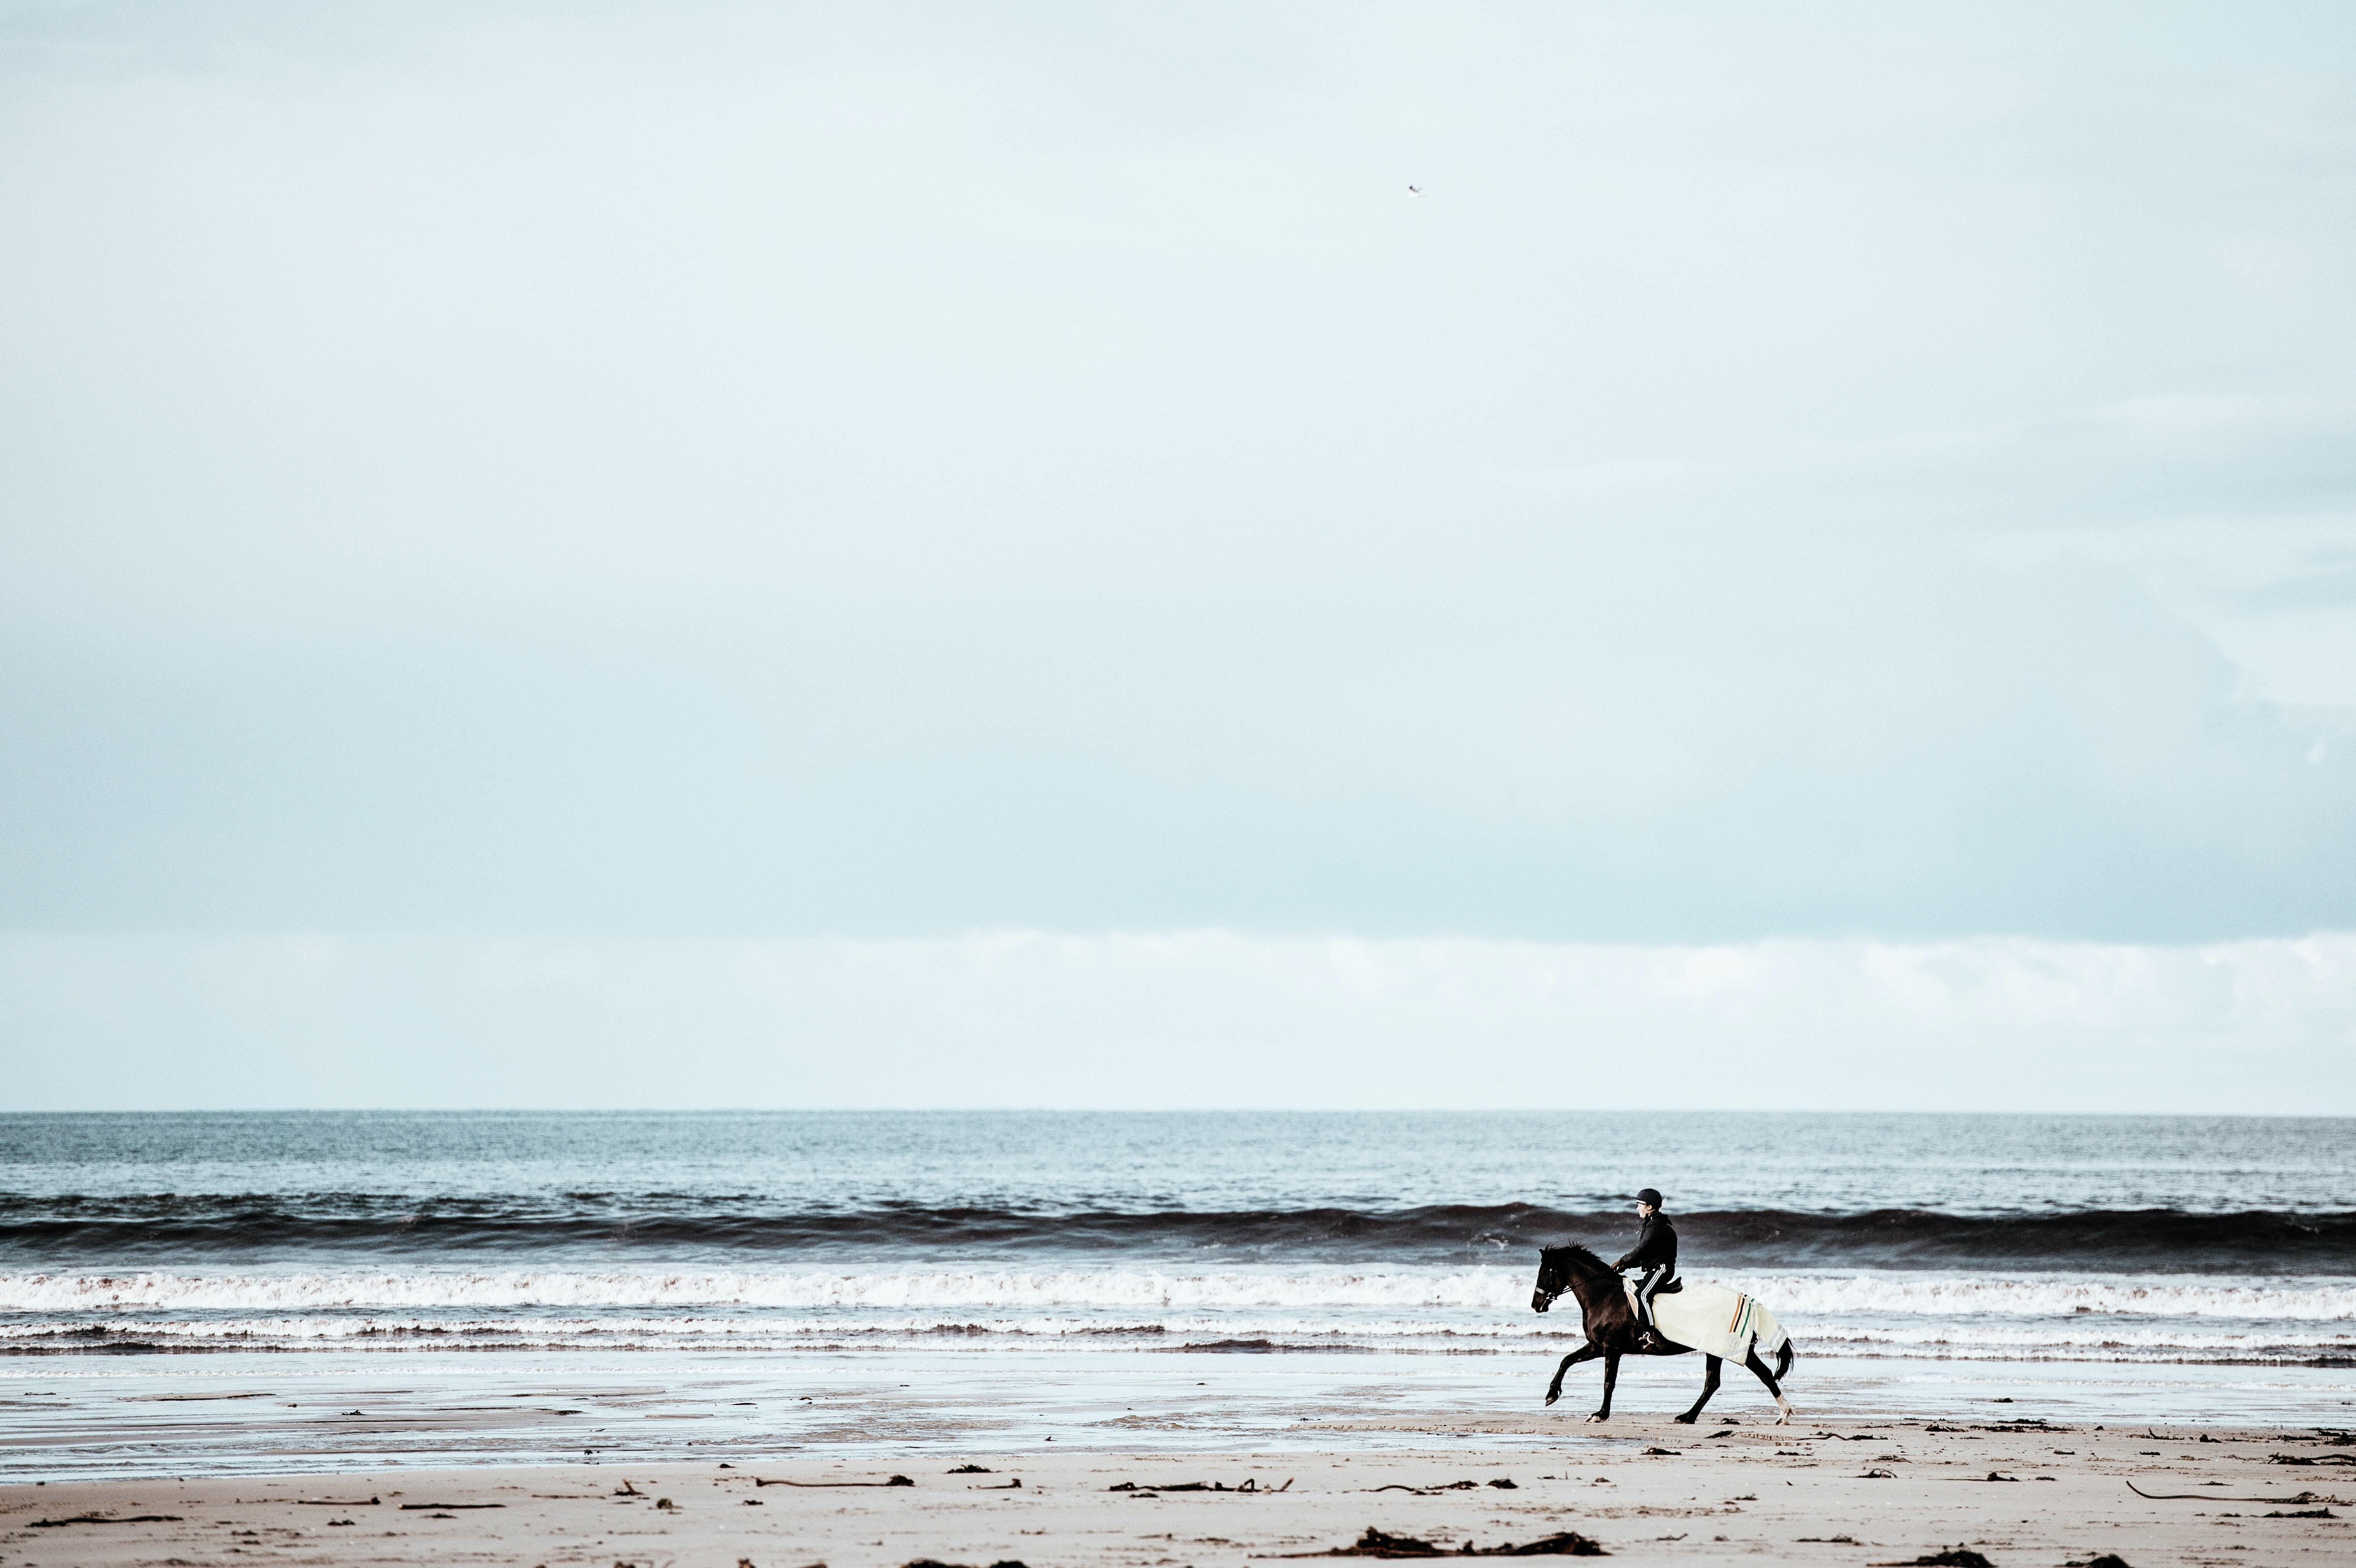 person riding on horse running in seashore